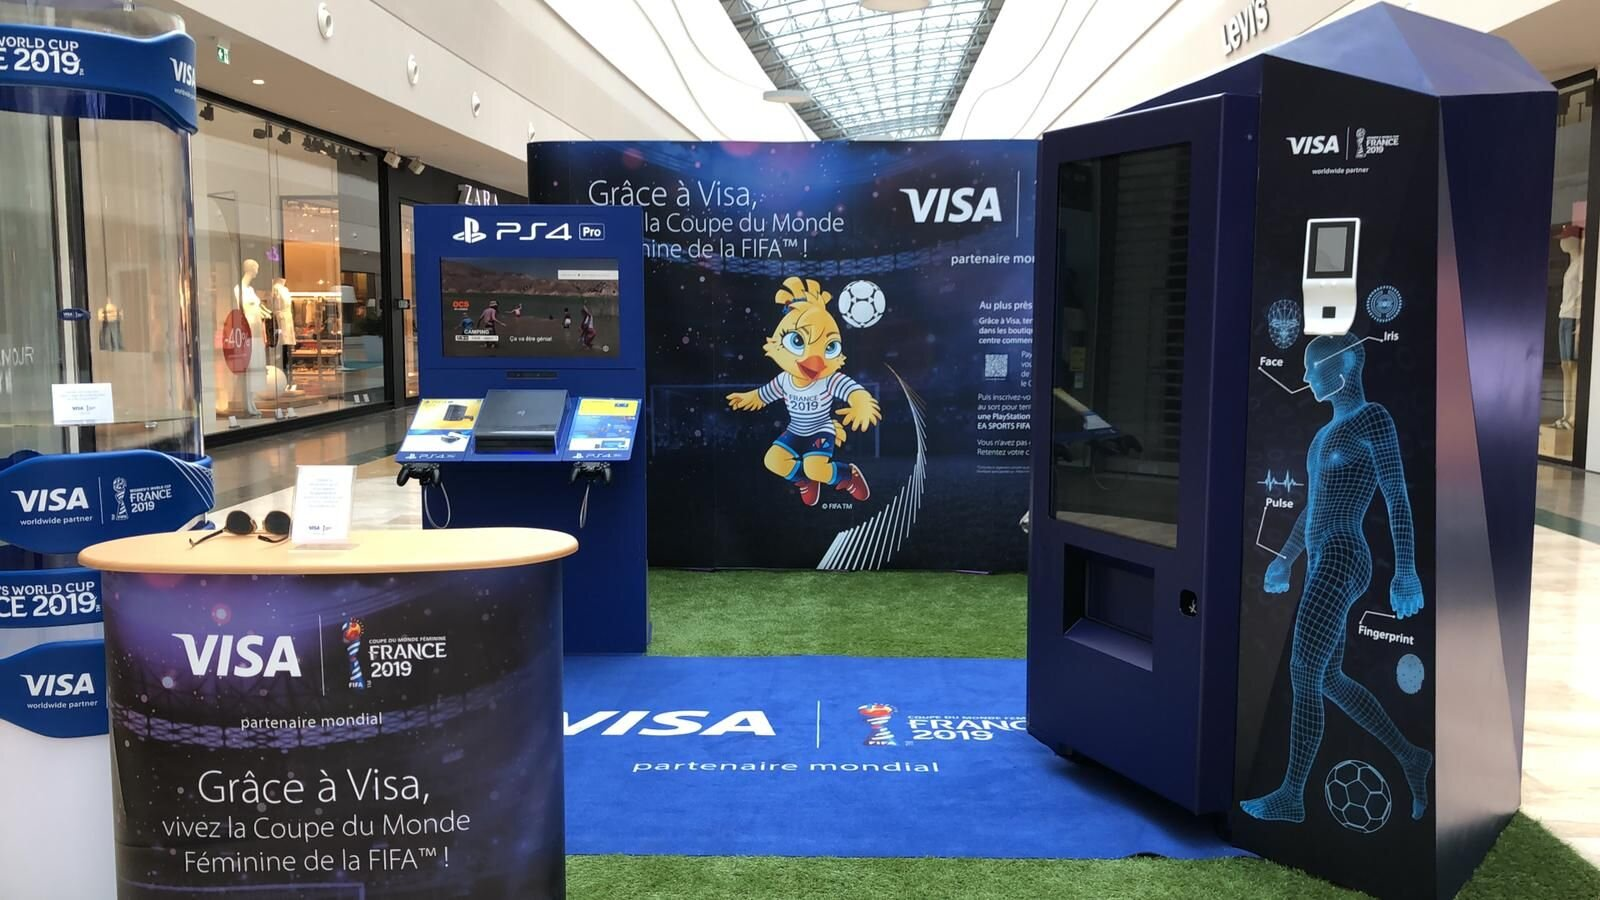 Vending Machines for Visa at the Woman's World Cup